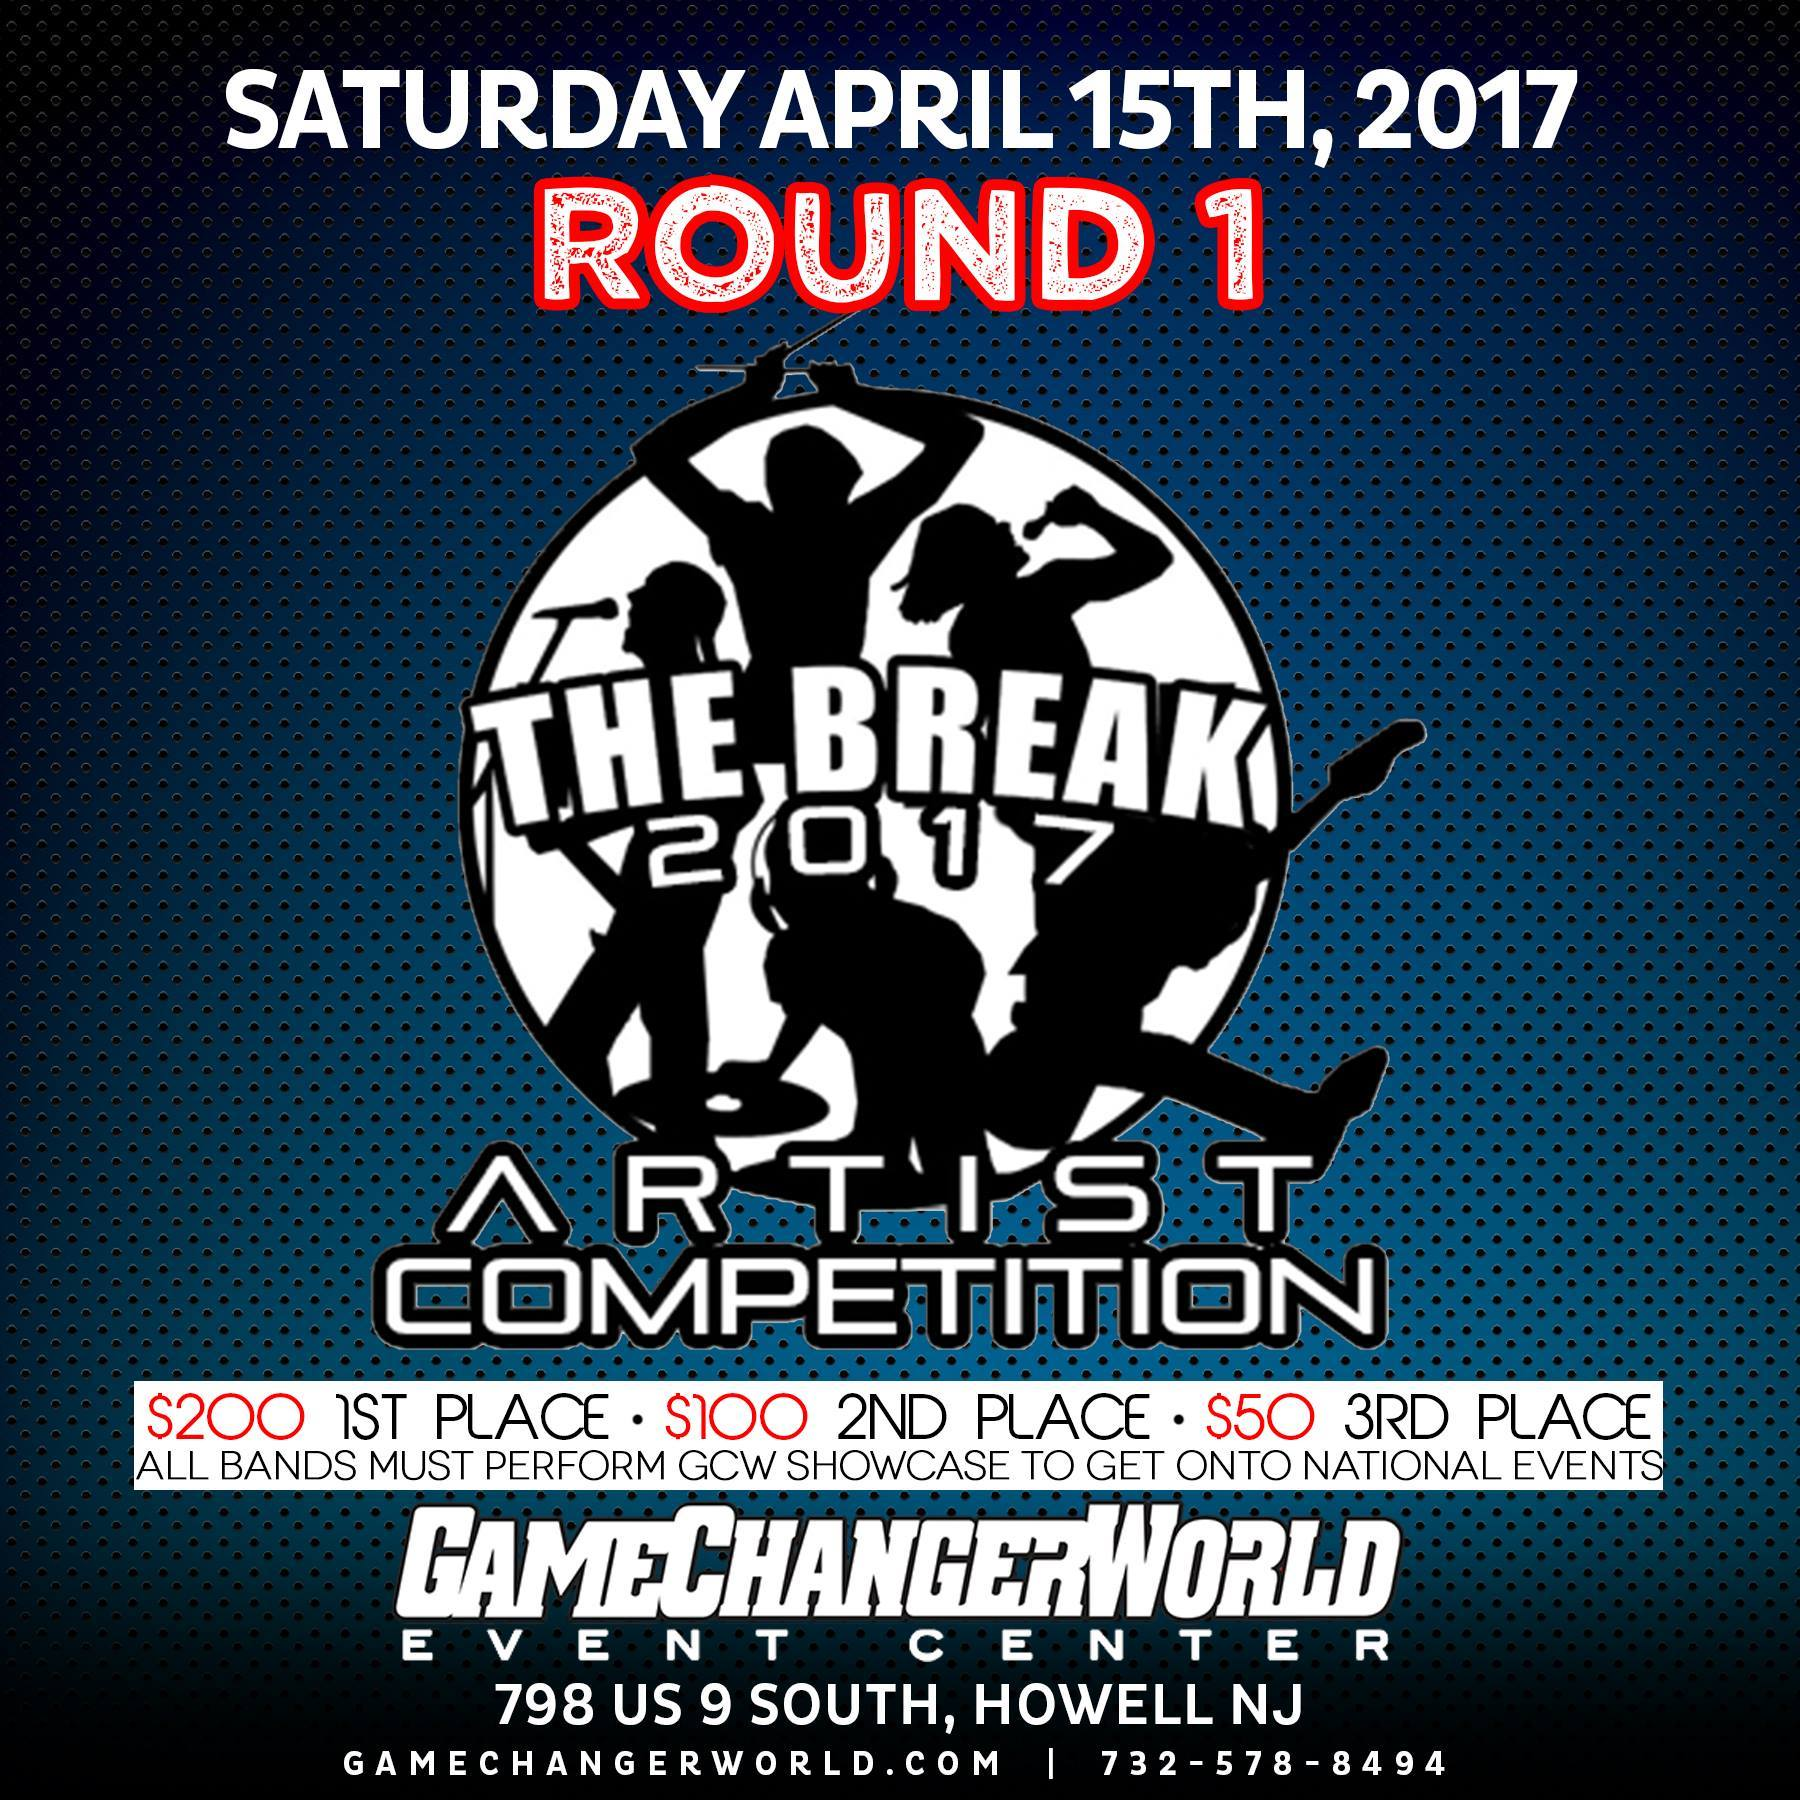 The Break 2017 Competition